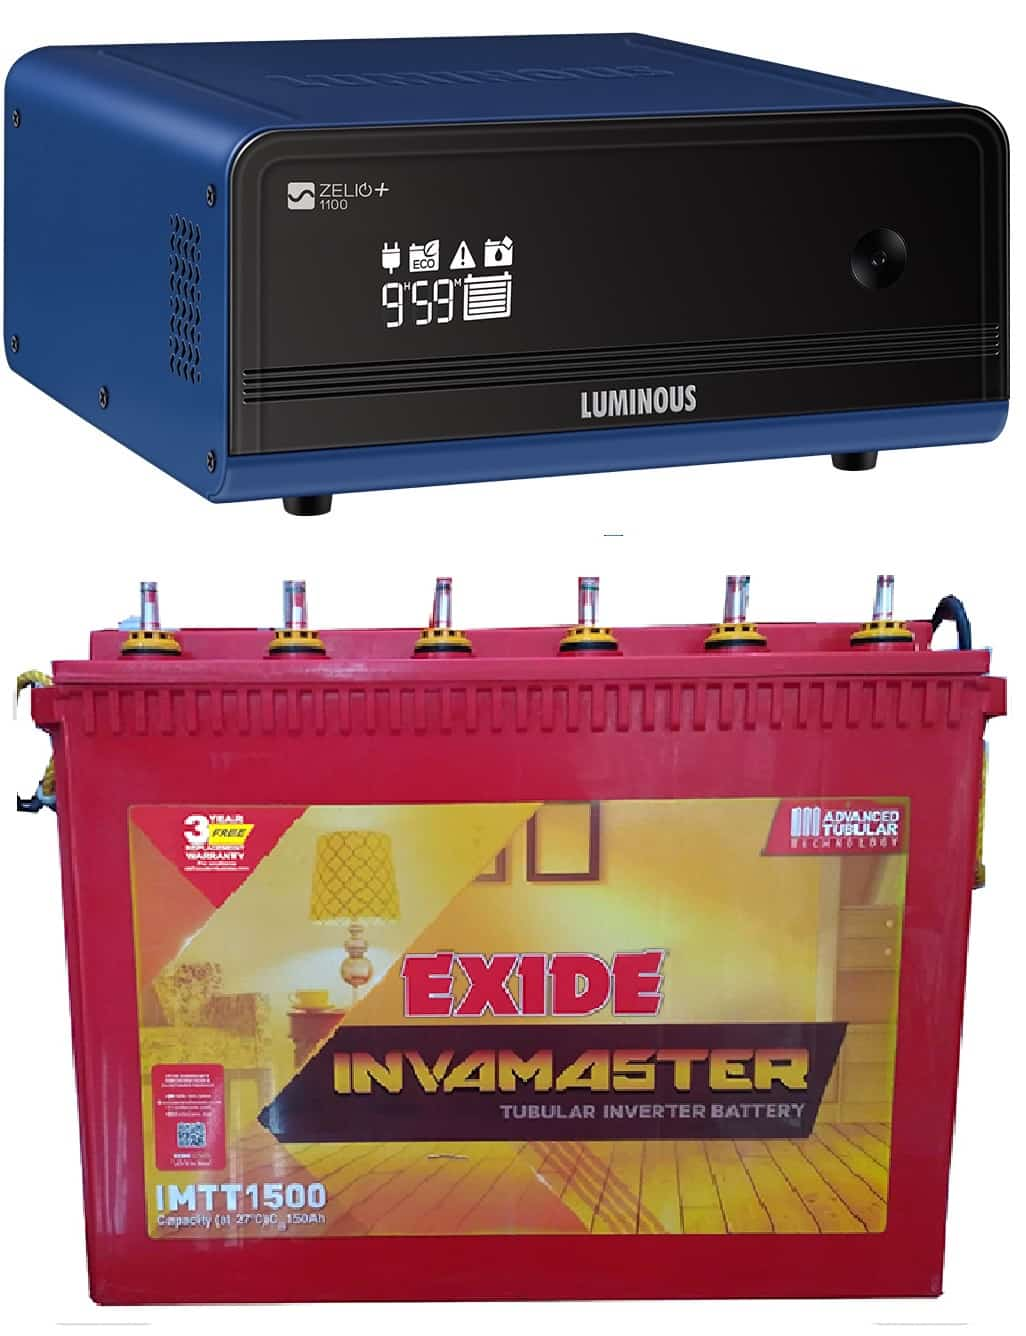 Luminous Zelio 1100va + Exide 150AH Tubular Battery Combo Offer